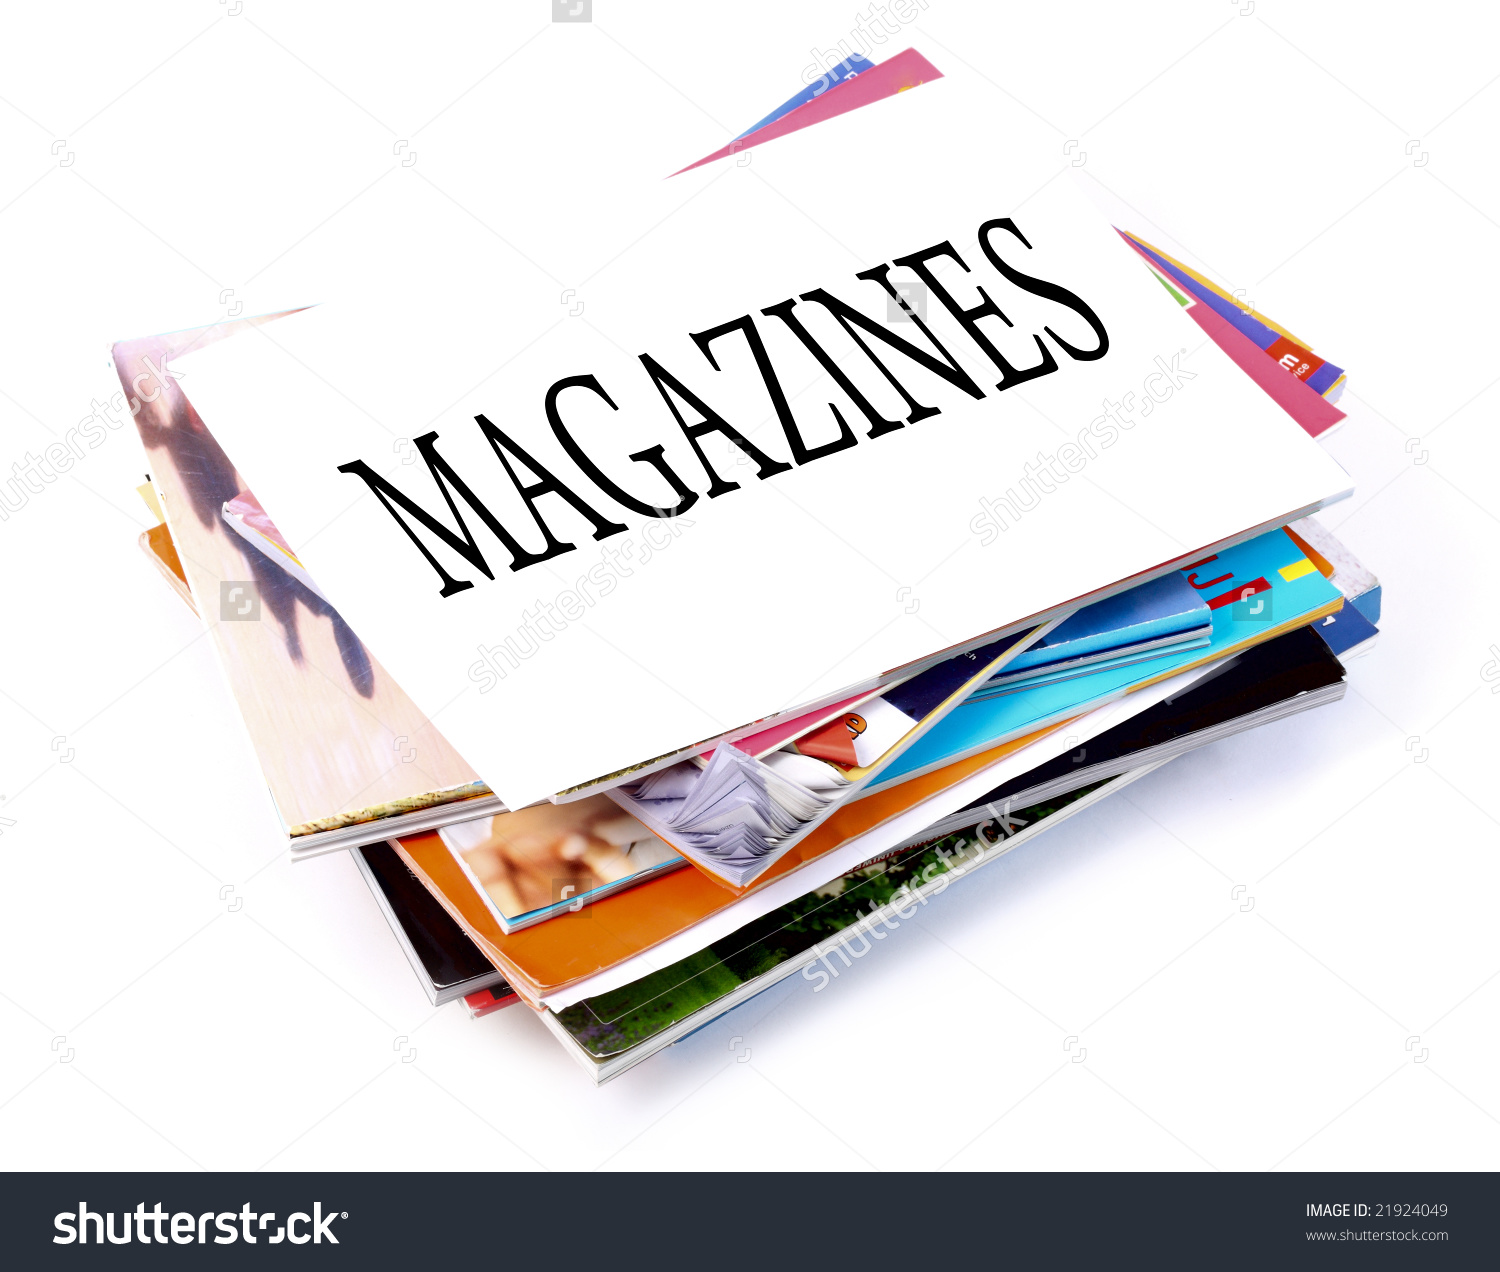 Magazines clipart - Clipground